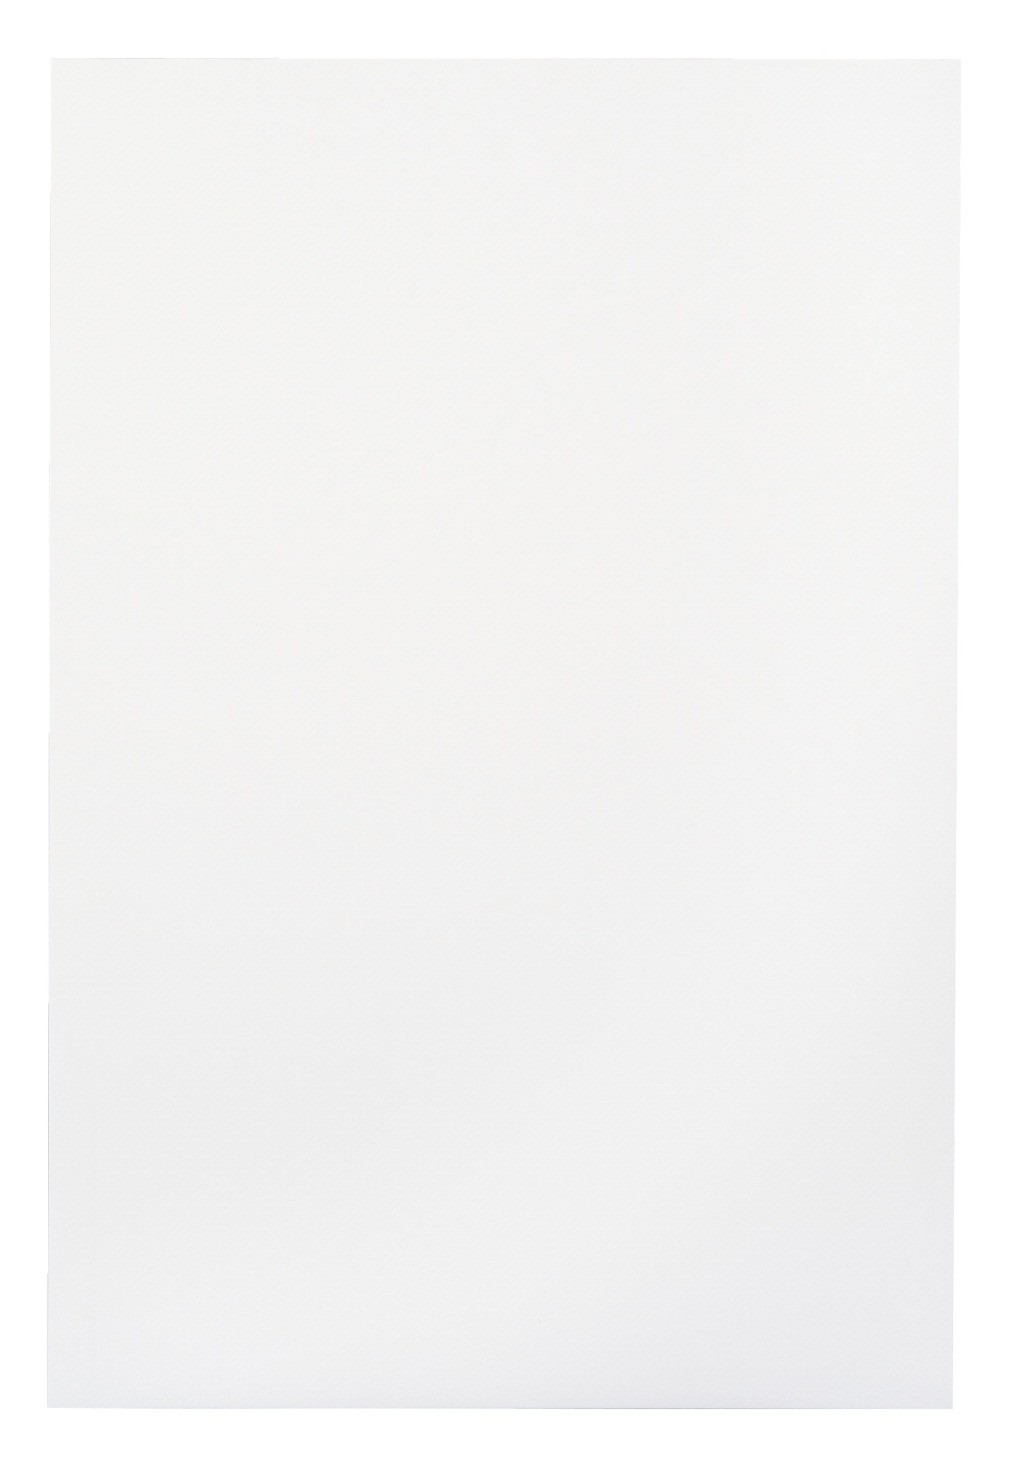 12 X 18 Folding Bristol Board, White - 100 Sht/Pkg